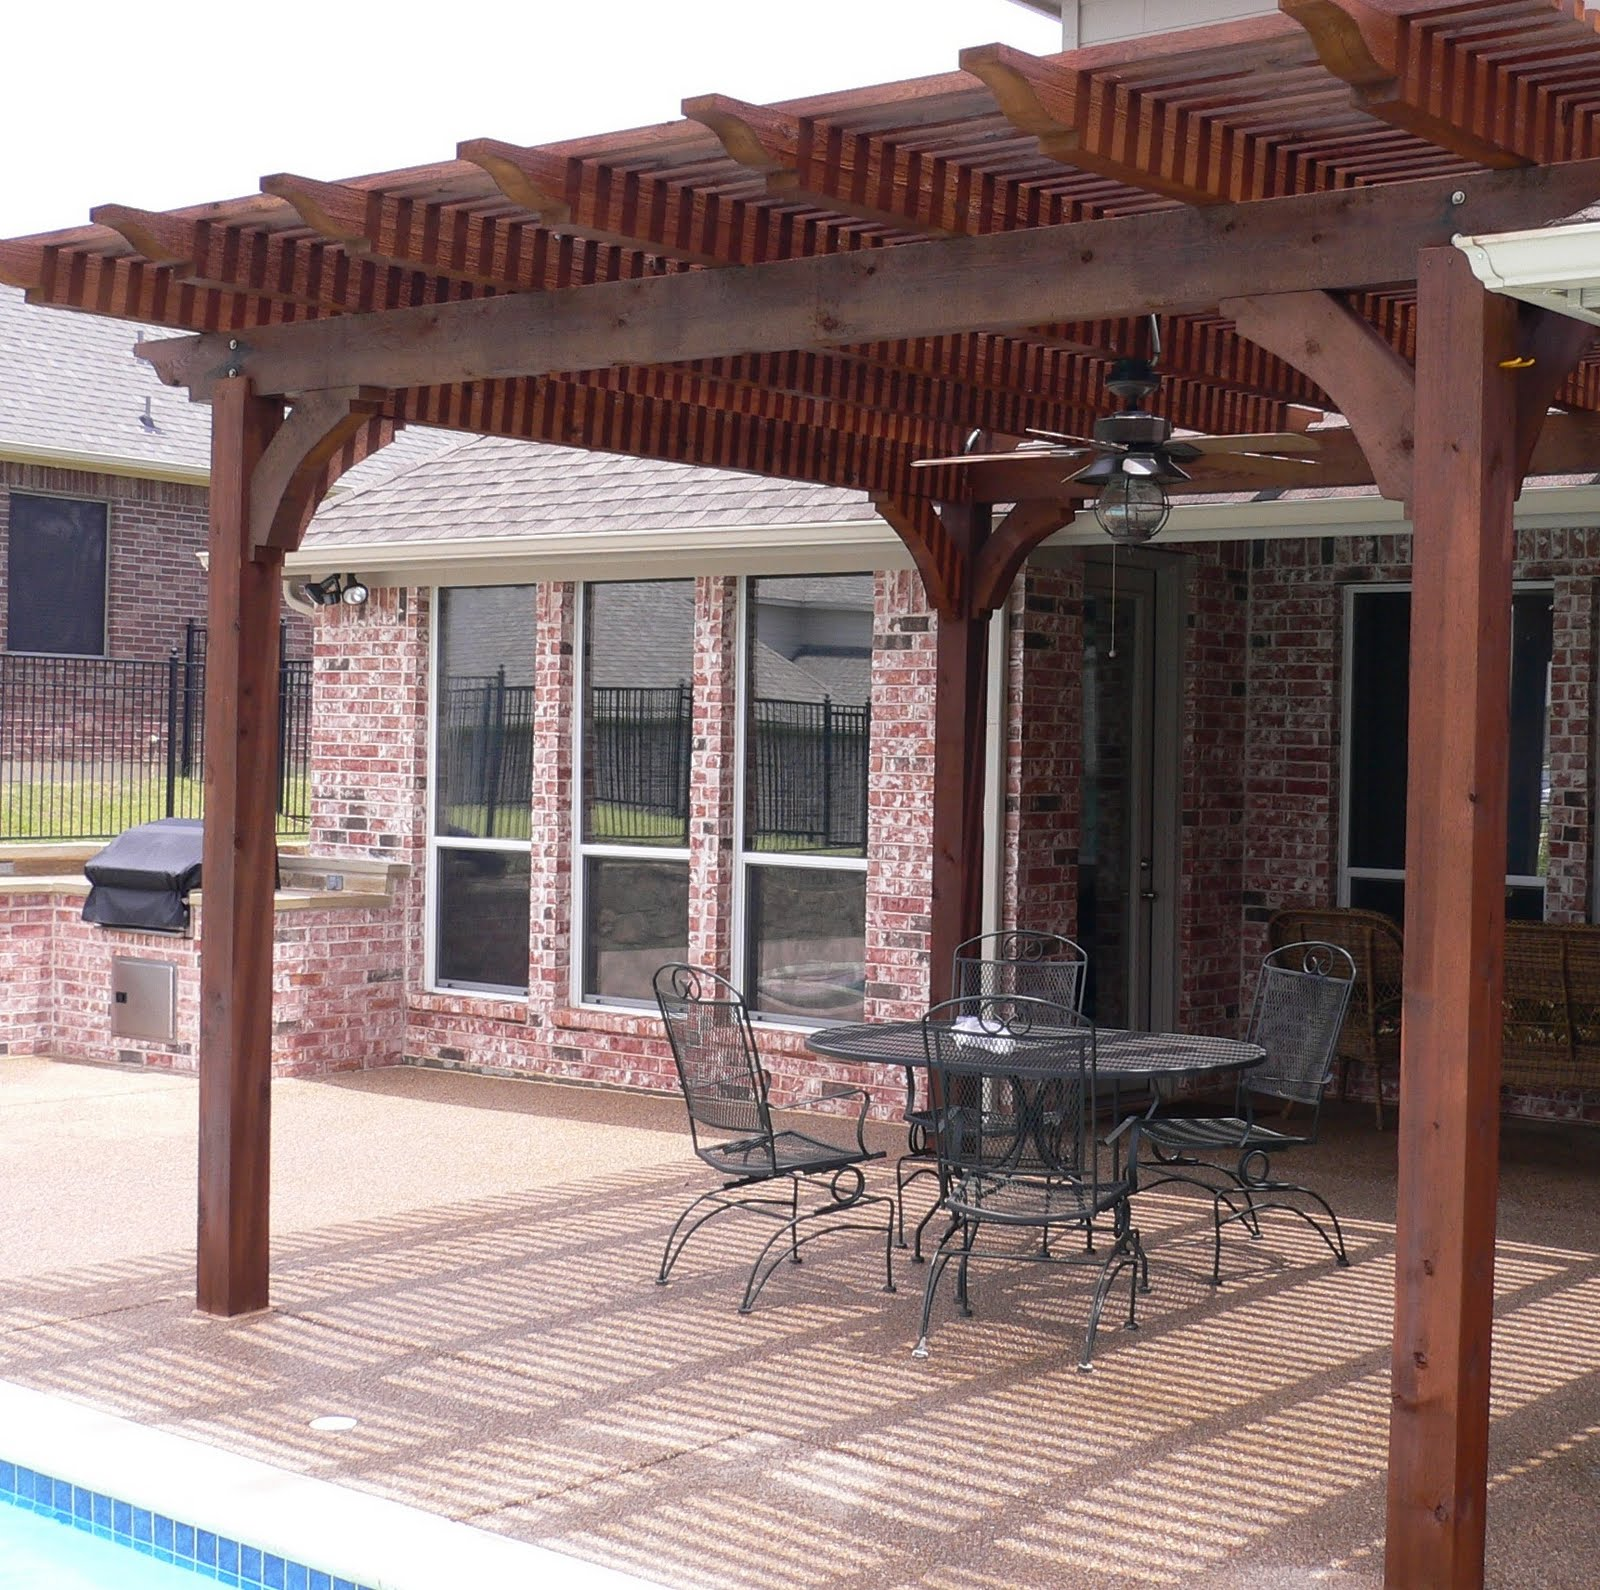 Wooden Patio Covers Design - HomesFeed on Covered Patio Design Ideas id=74402